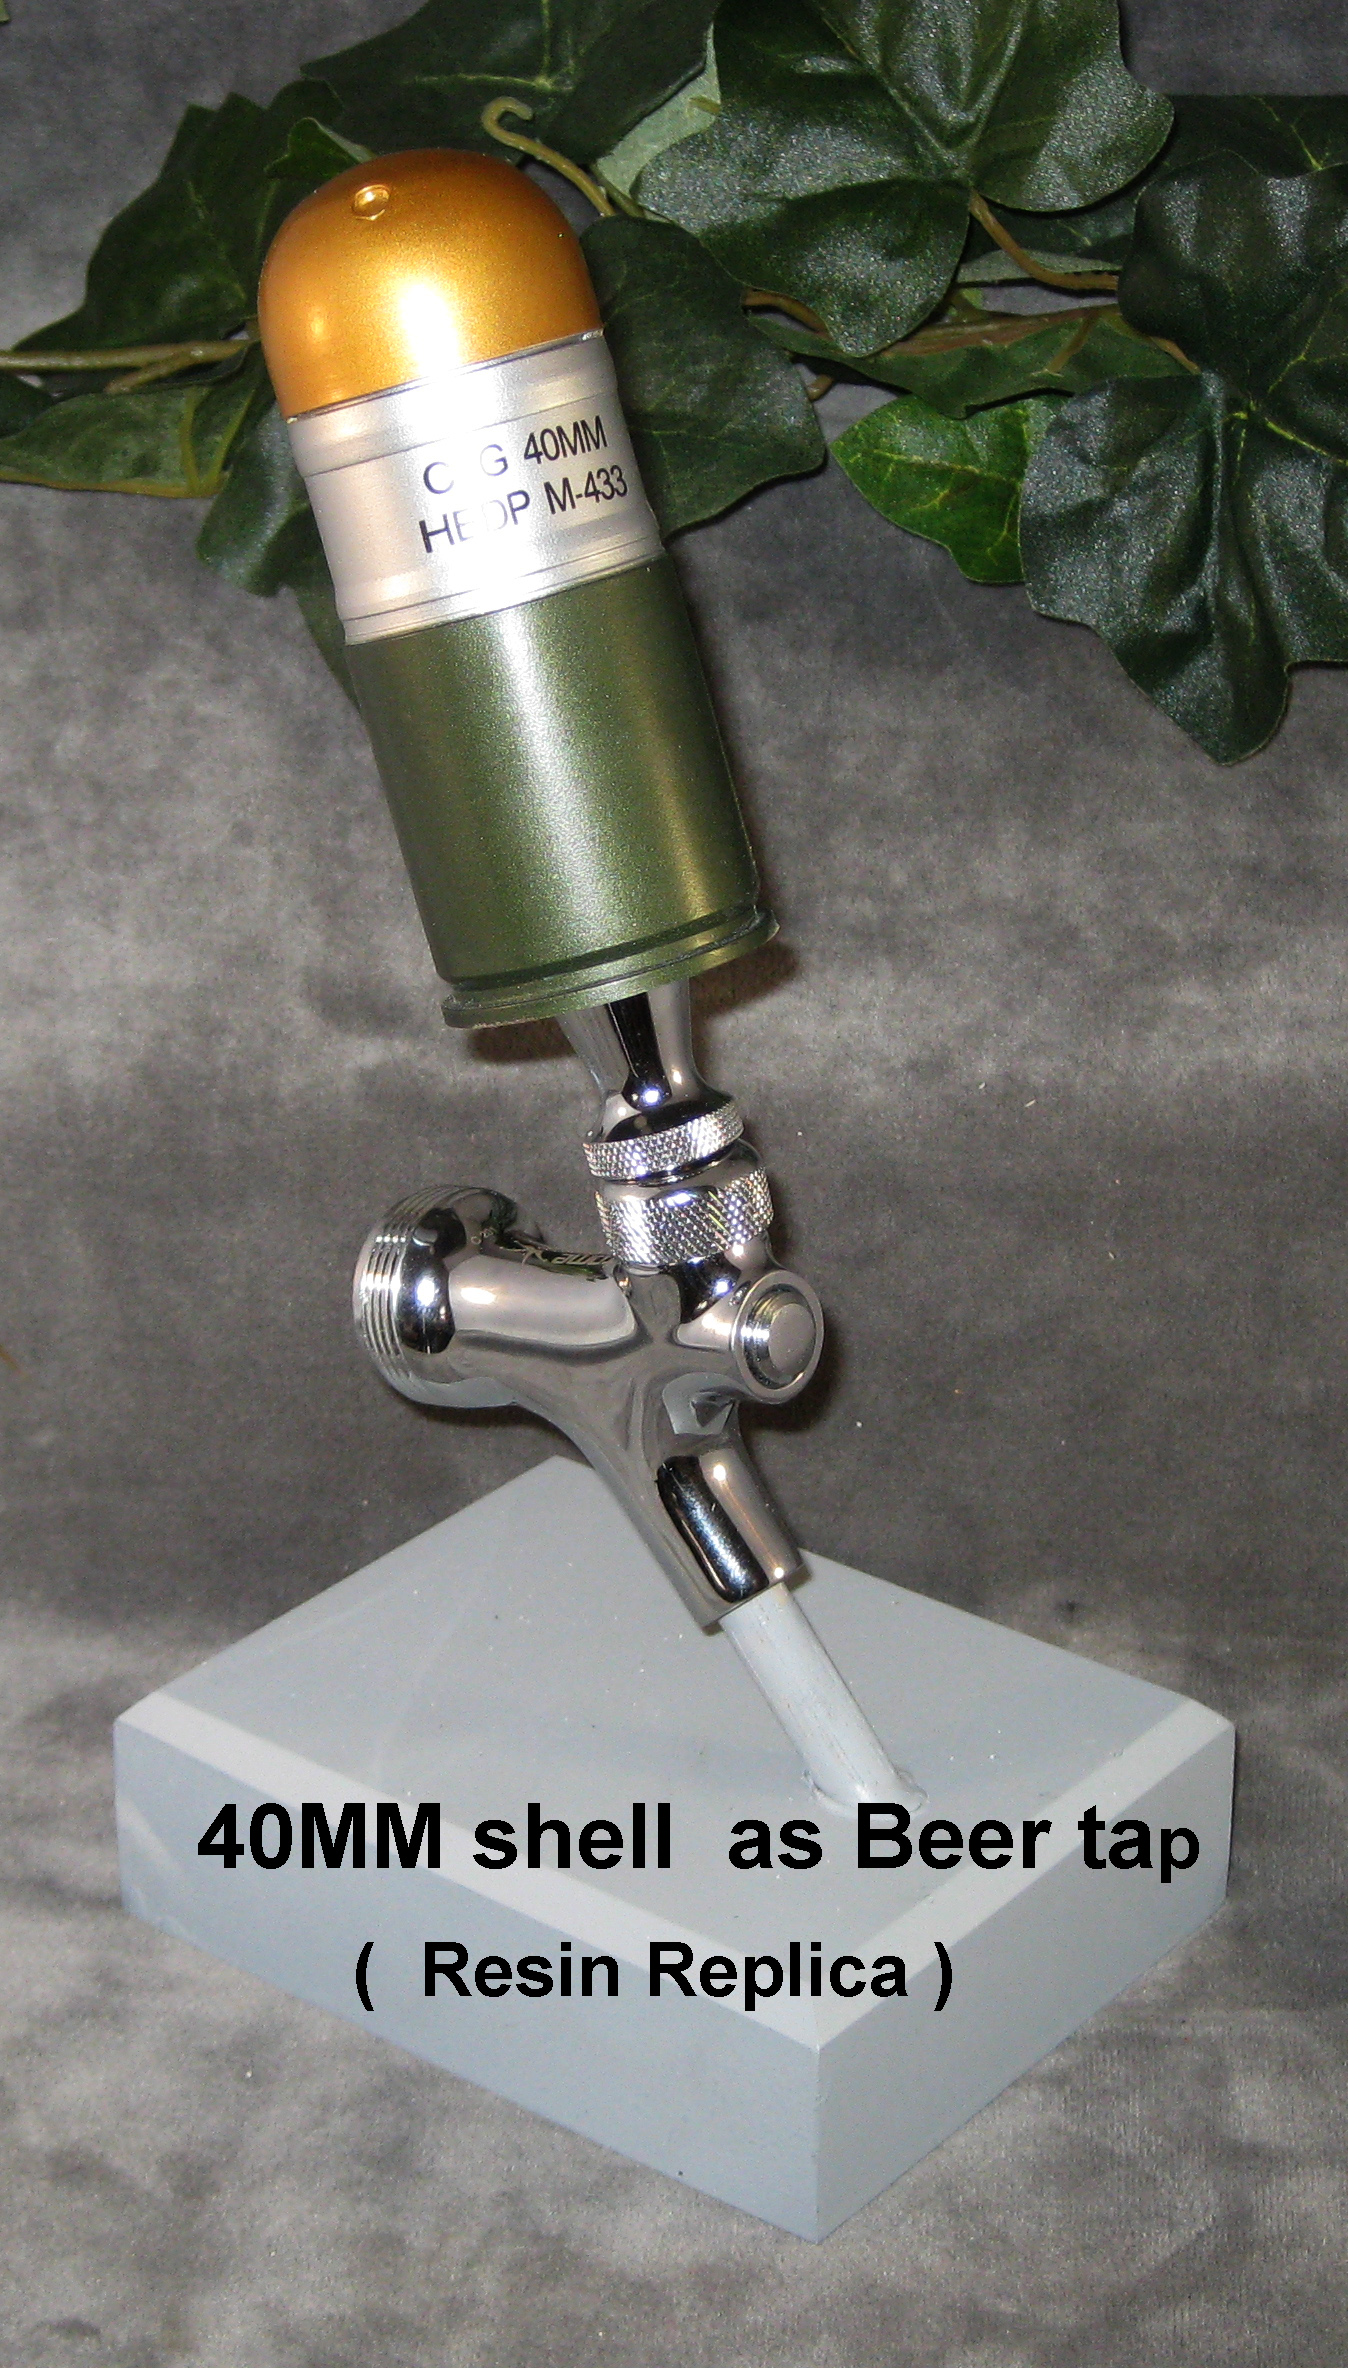 40MM grenade shell as beer tap - Click Image to Close